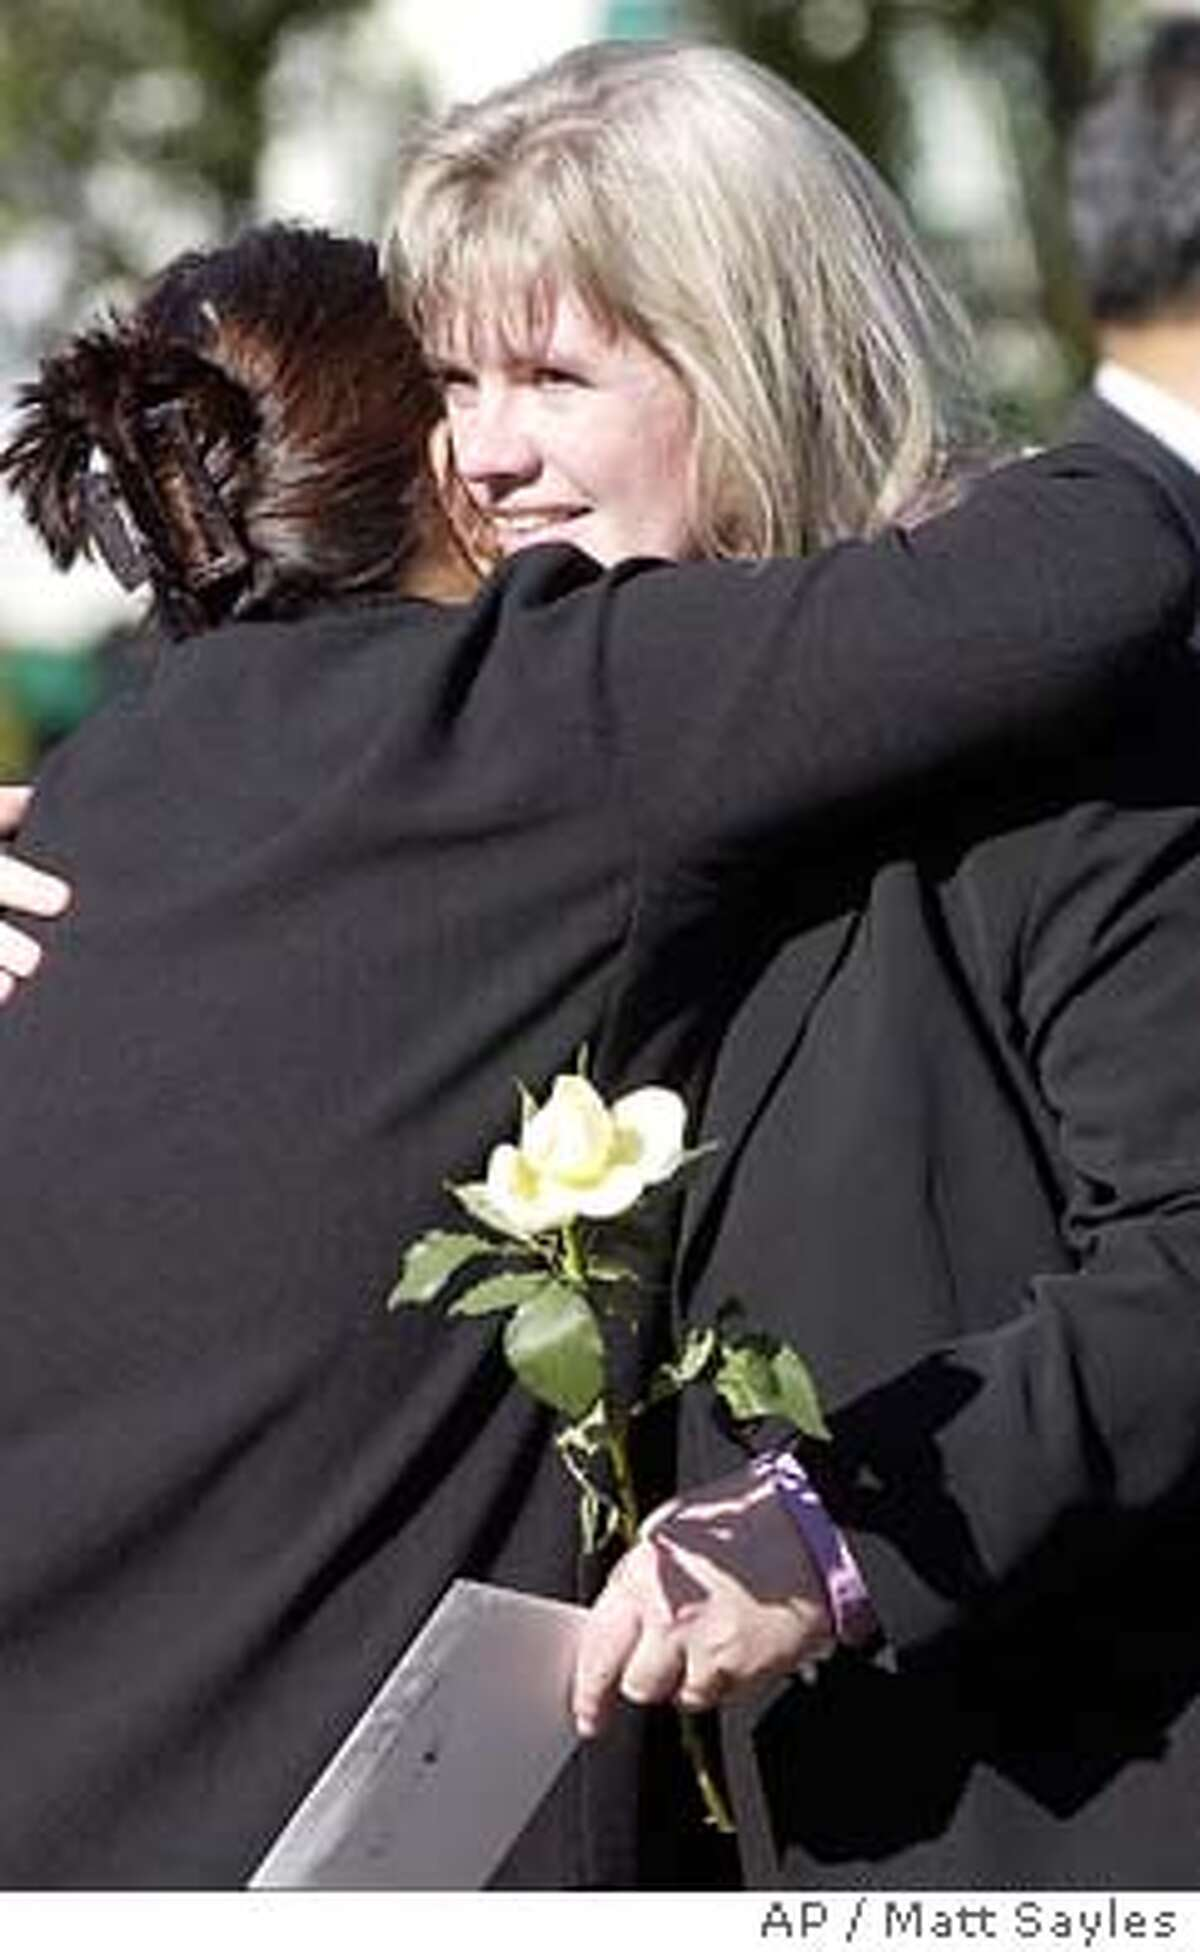 Cathy Rucker, facing camera, gets a hug from an unidentified person after a memorial service for her husband, fallen firefighter Steven Rucker, in San Rafael, Calif., Wednesday, Nov. 12, 2003. Steven Rucker died Oct. 29 battling one of the fires that ravaged Southern California. (AP Photo/Matt Sayles)